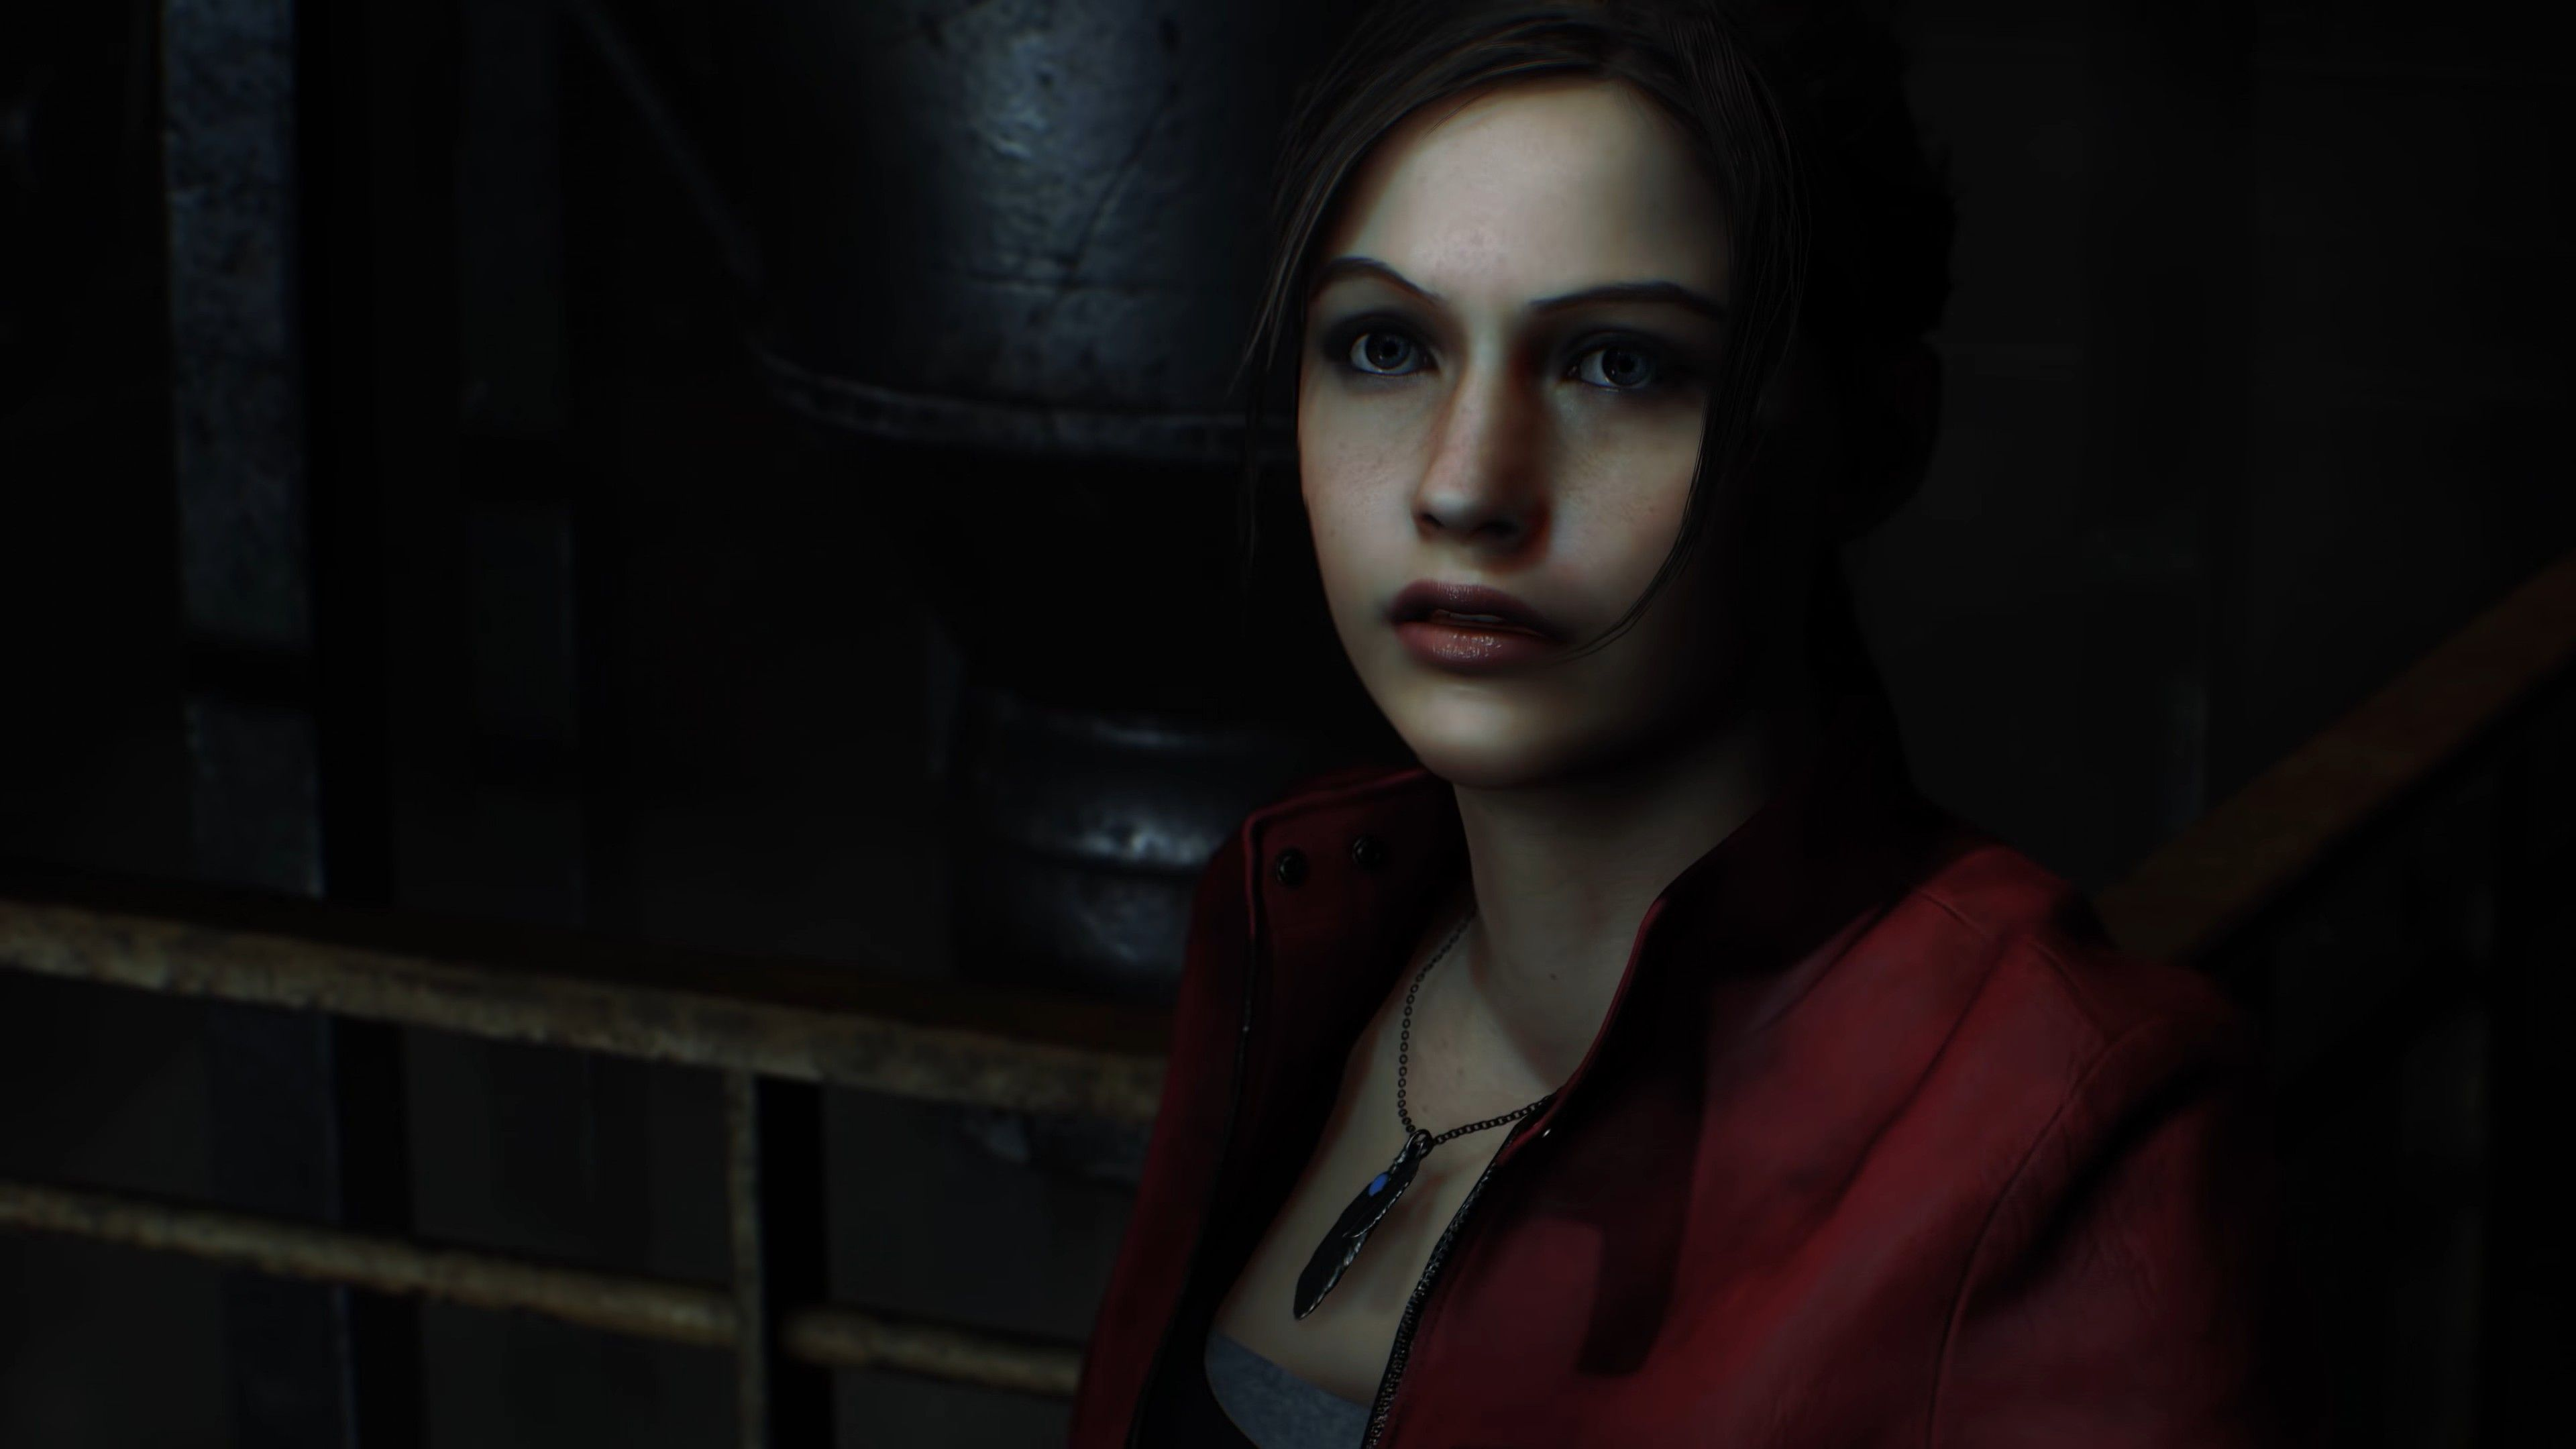 Wallpaper 4k Claire Redfield Resident Evil 2 4k Wallpapers Claire